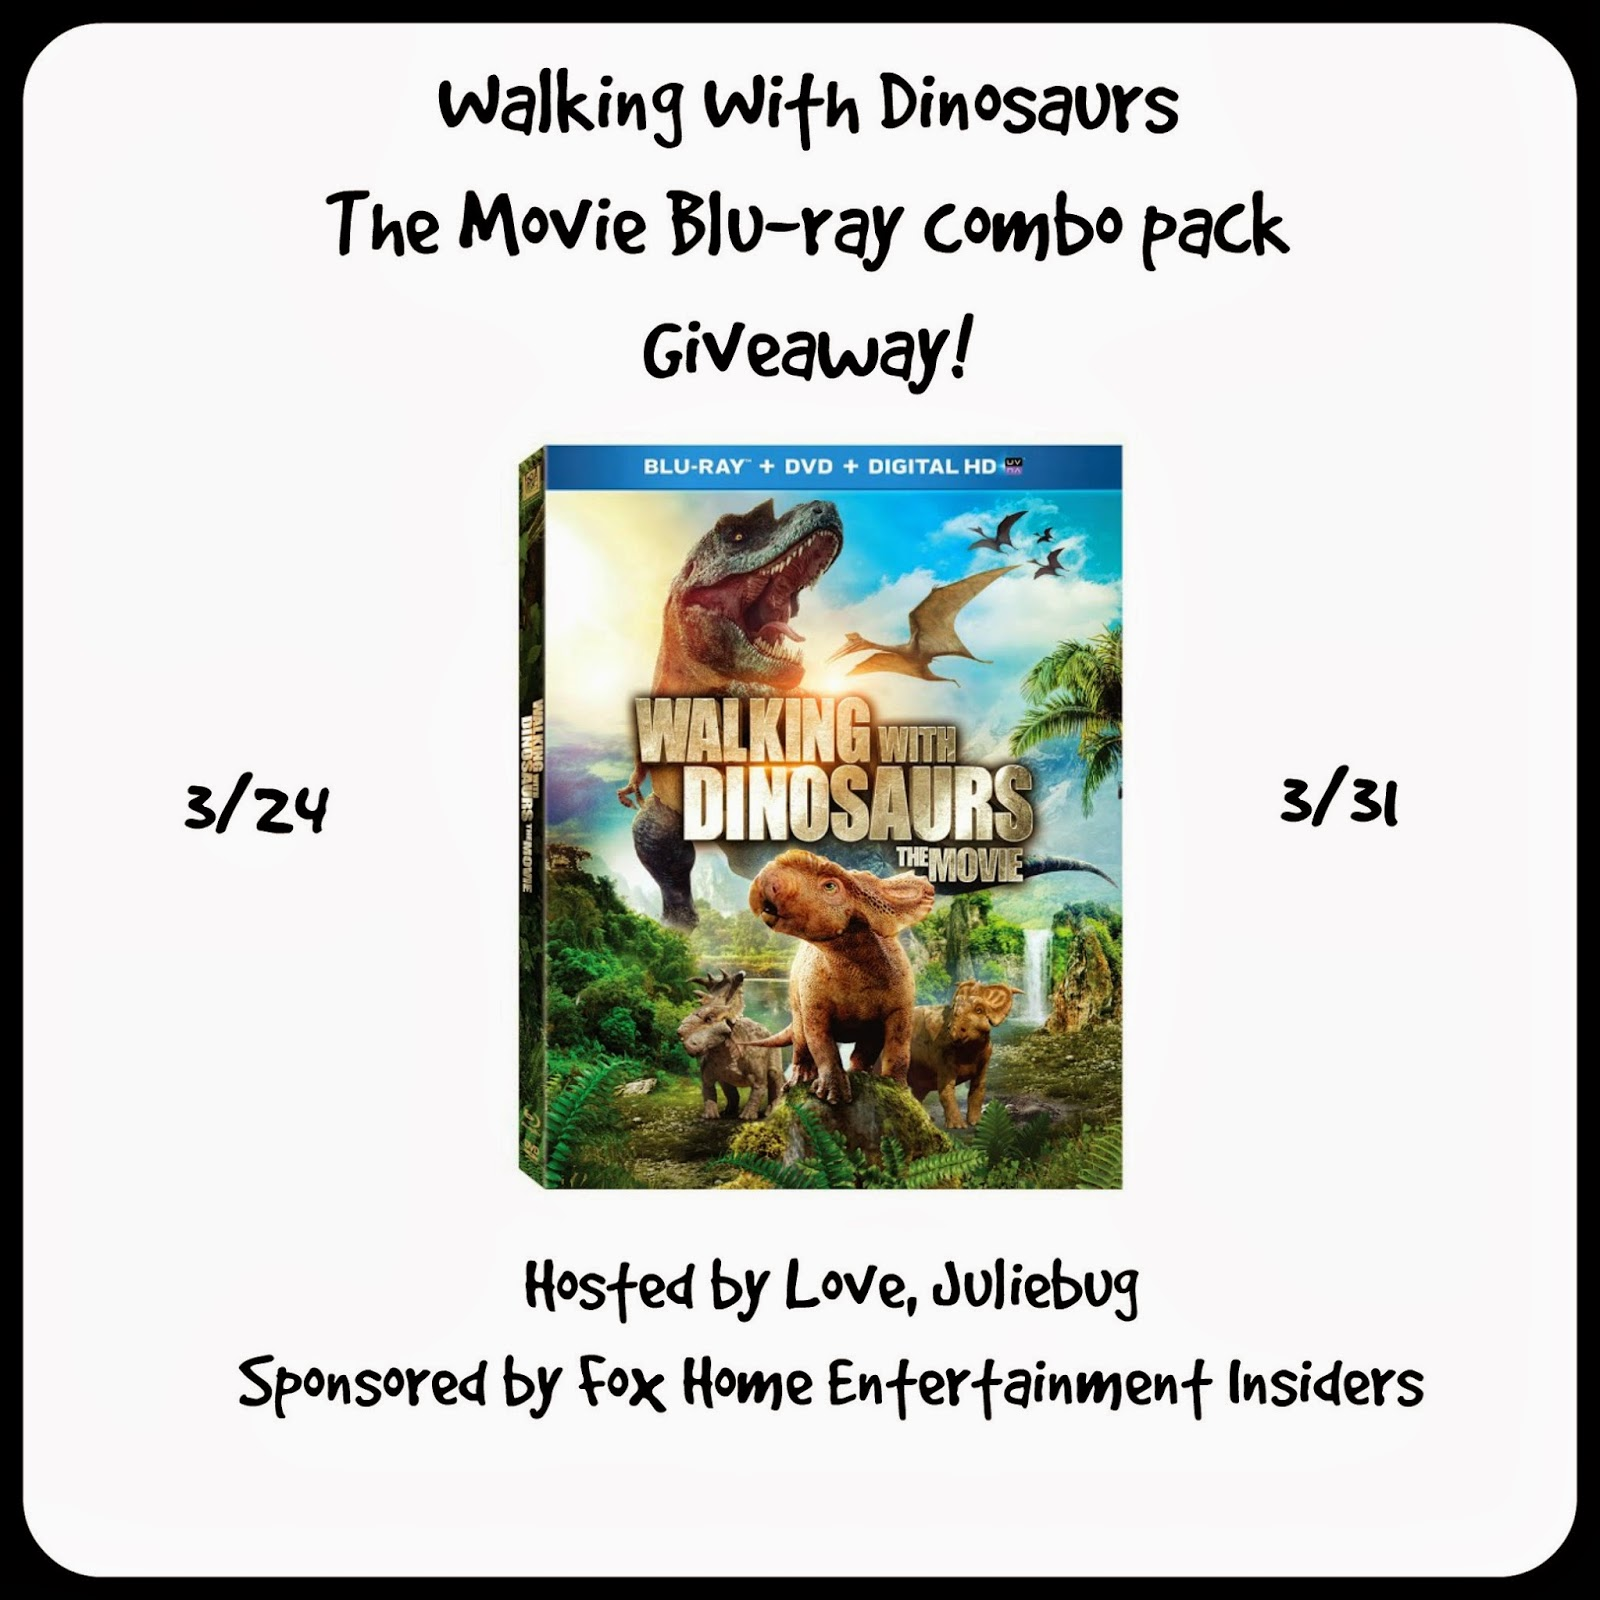 Enter the Walking with Dinosaurs Blu-ray Giveaway. Ends 3/31.